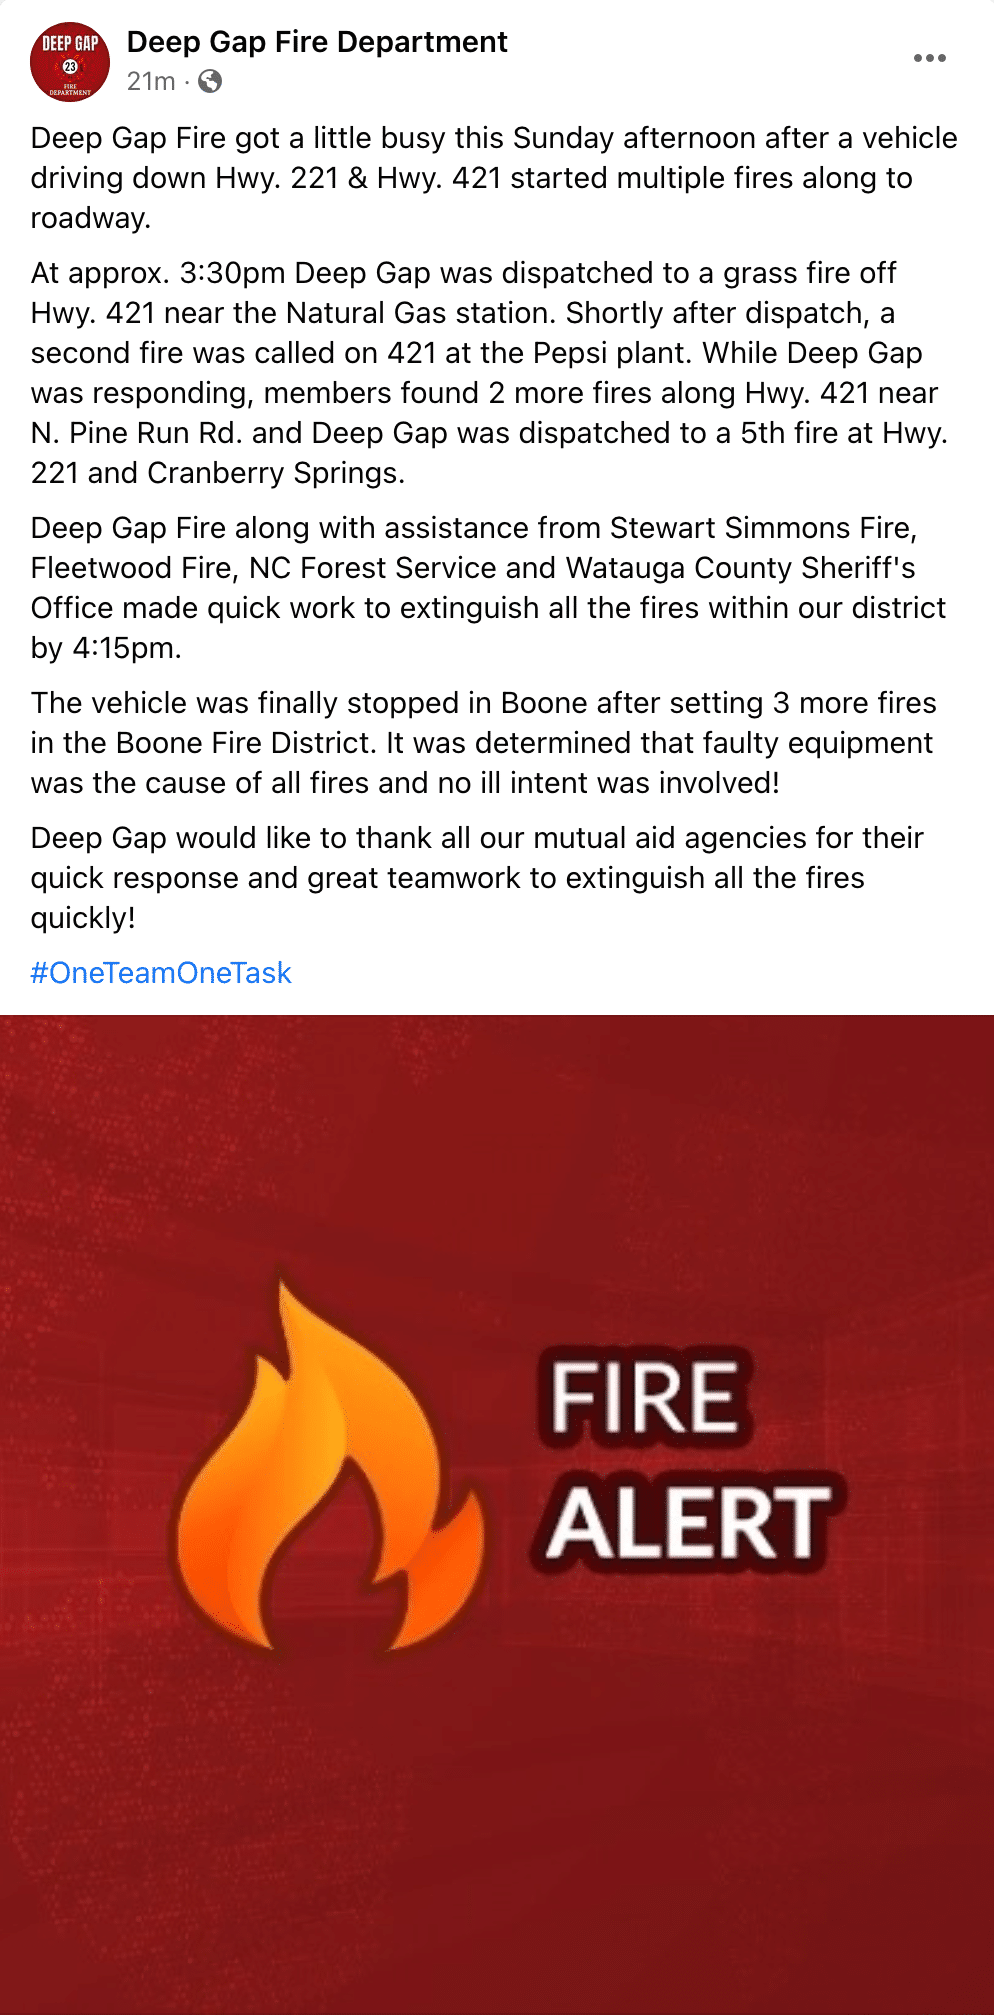 Multiple grass fires in Deep Gap & Boone on Sunday afternoon